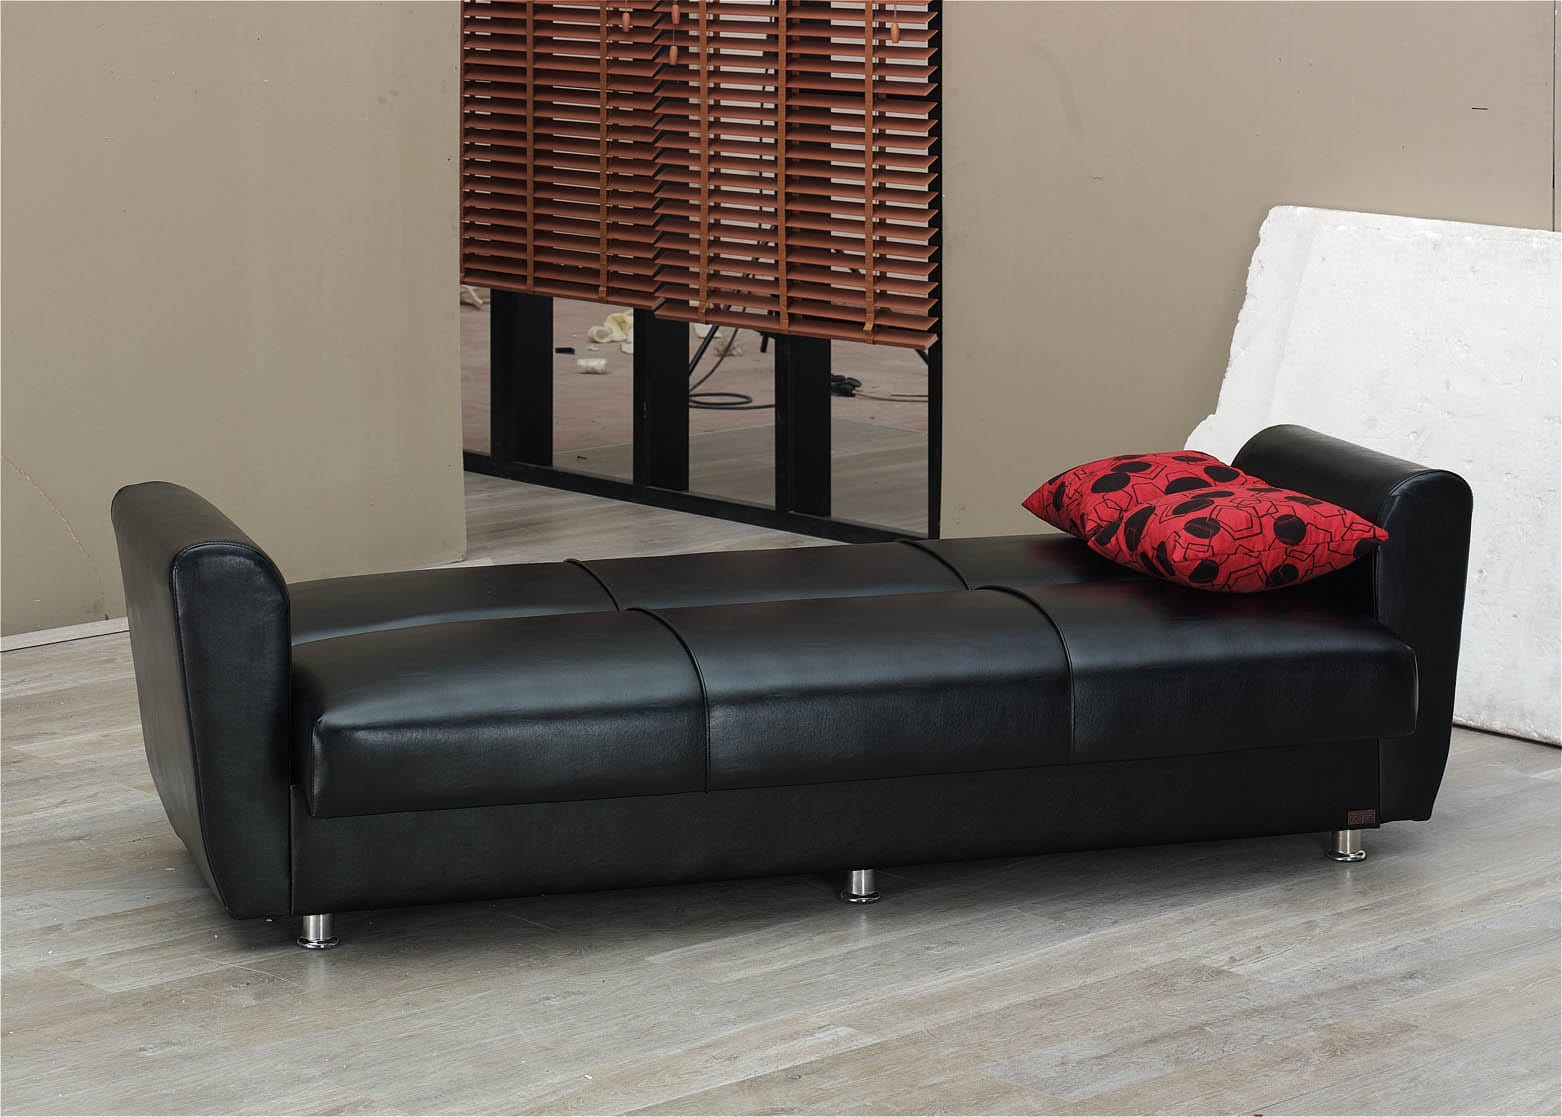 Harlem Sofa Bed By Empire Furniture Usa